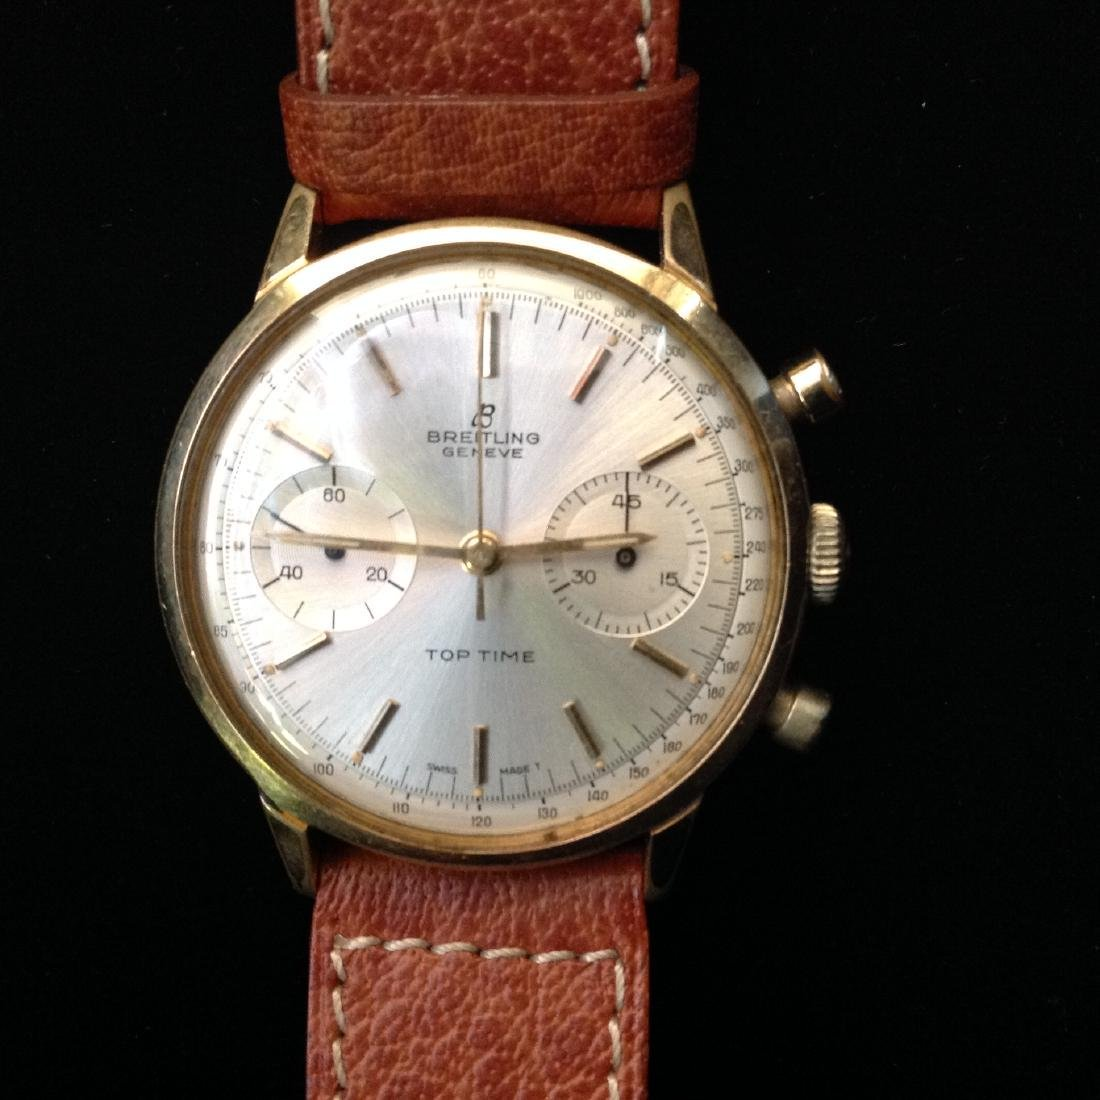 Breitling TopTime 1961 Watch